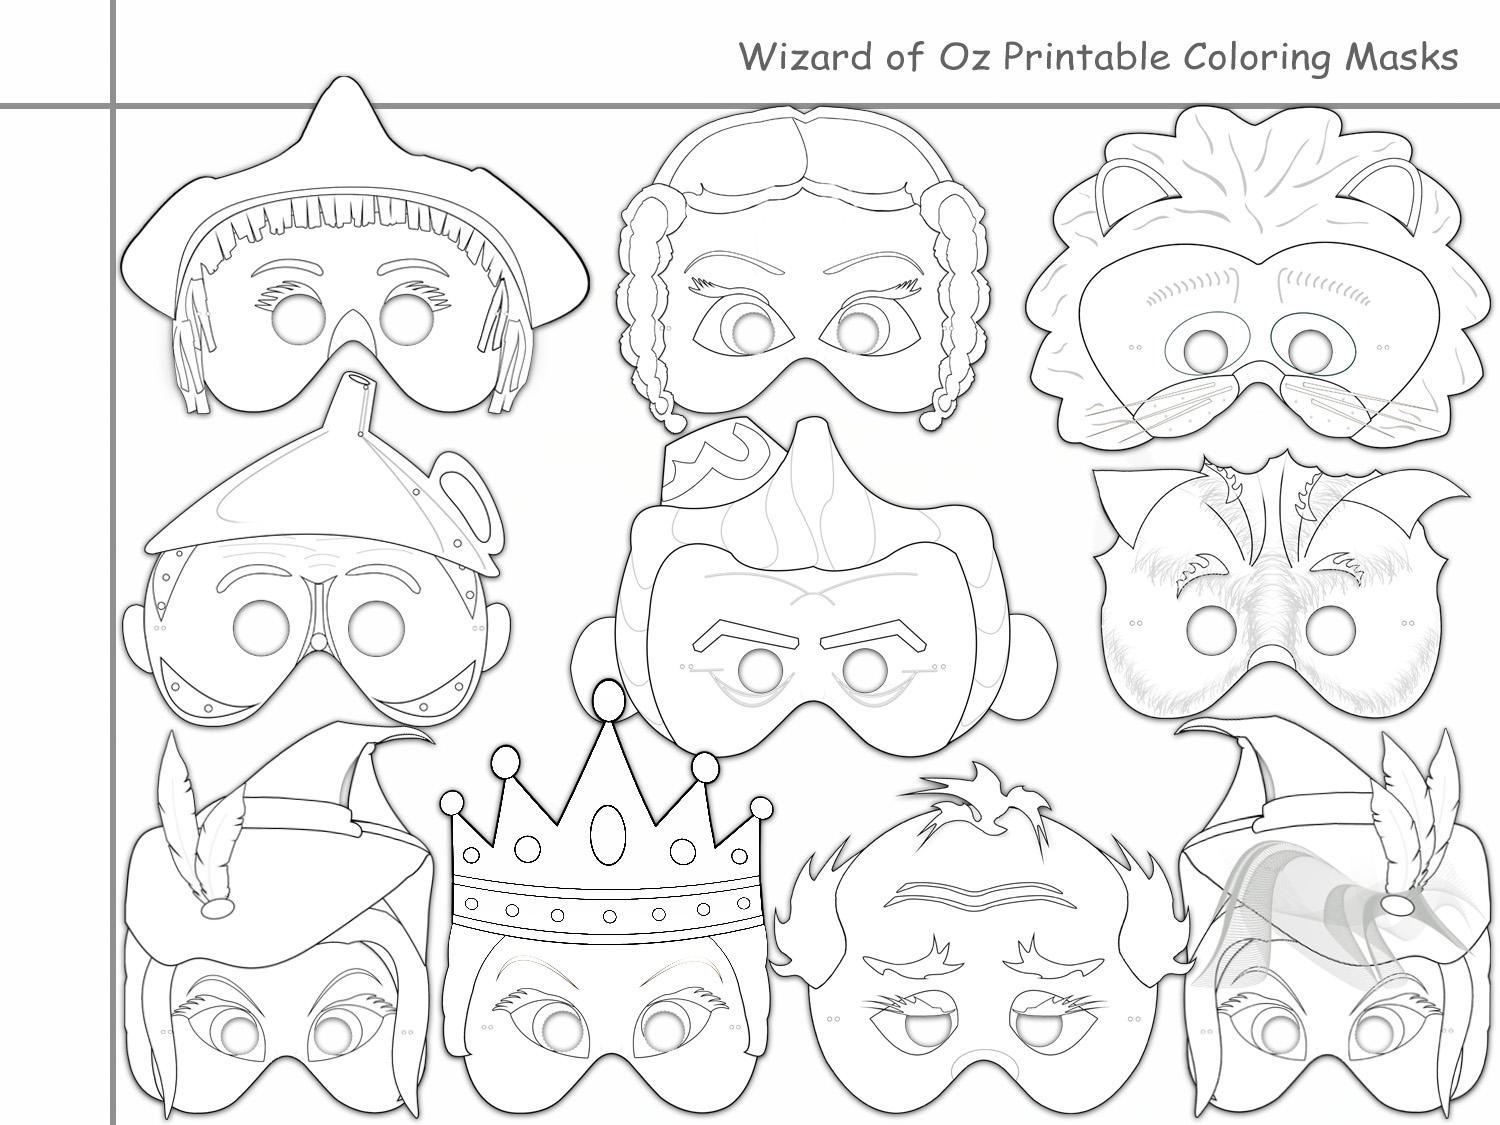 Wizard Of Oz Printable Coloring Masks,holidaypartystar On Zibbet - Free Printable Wizard Of Oz Masks